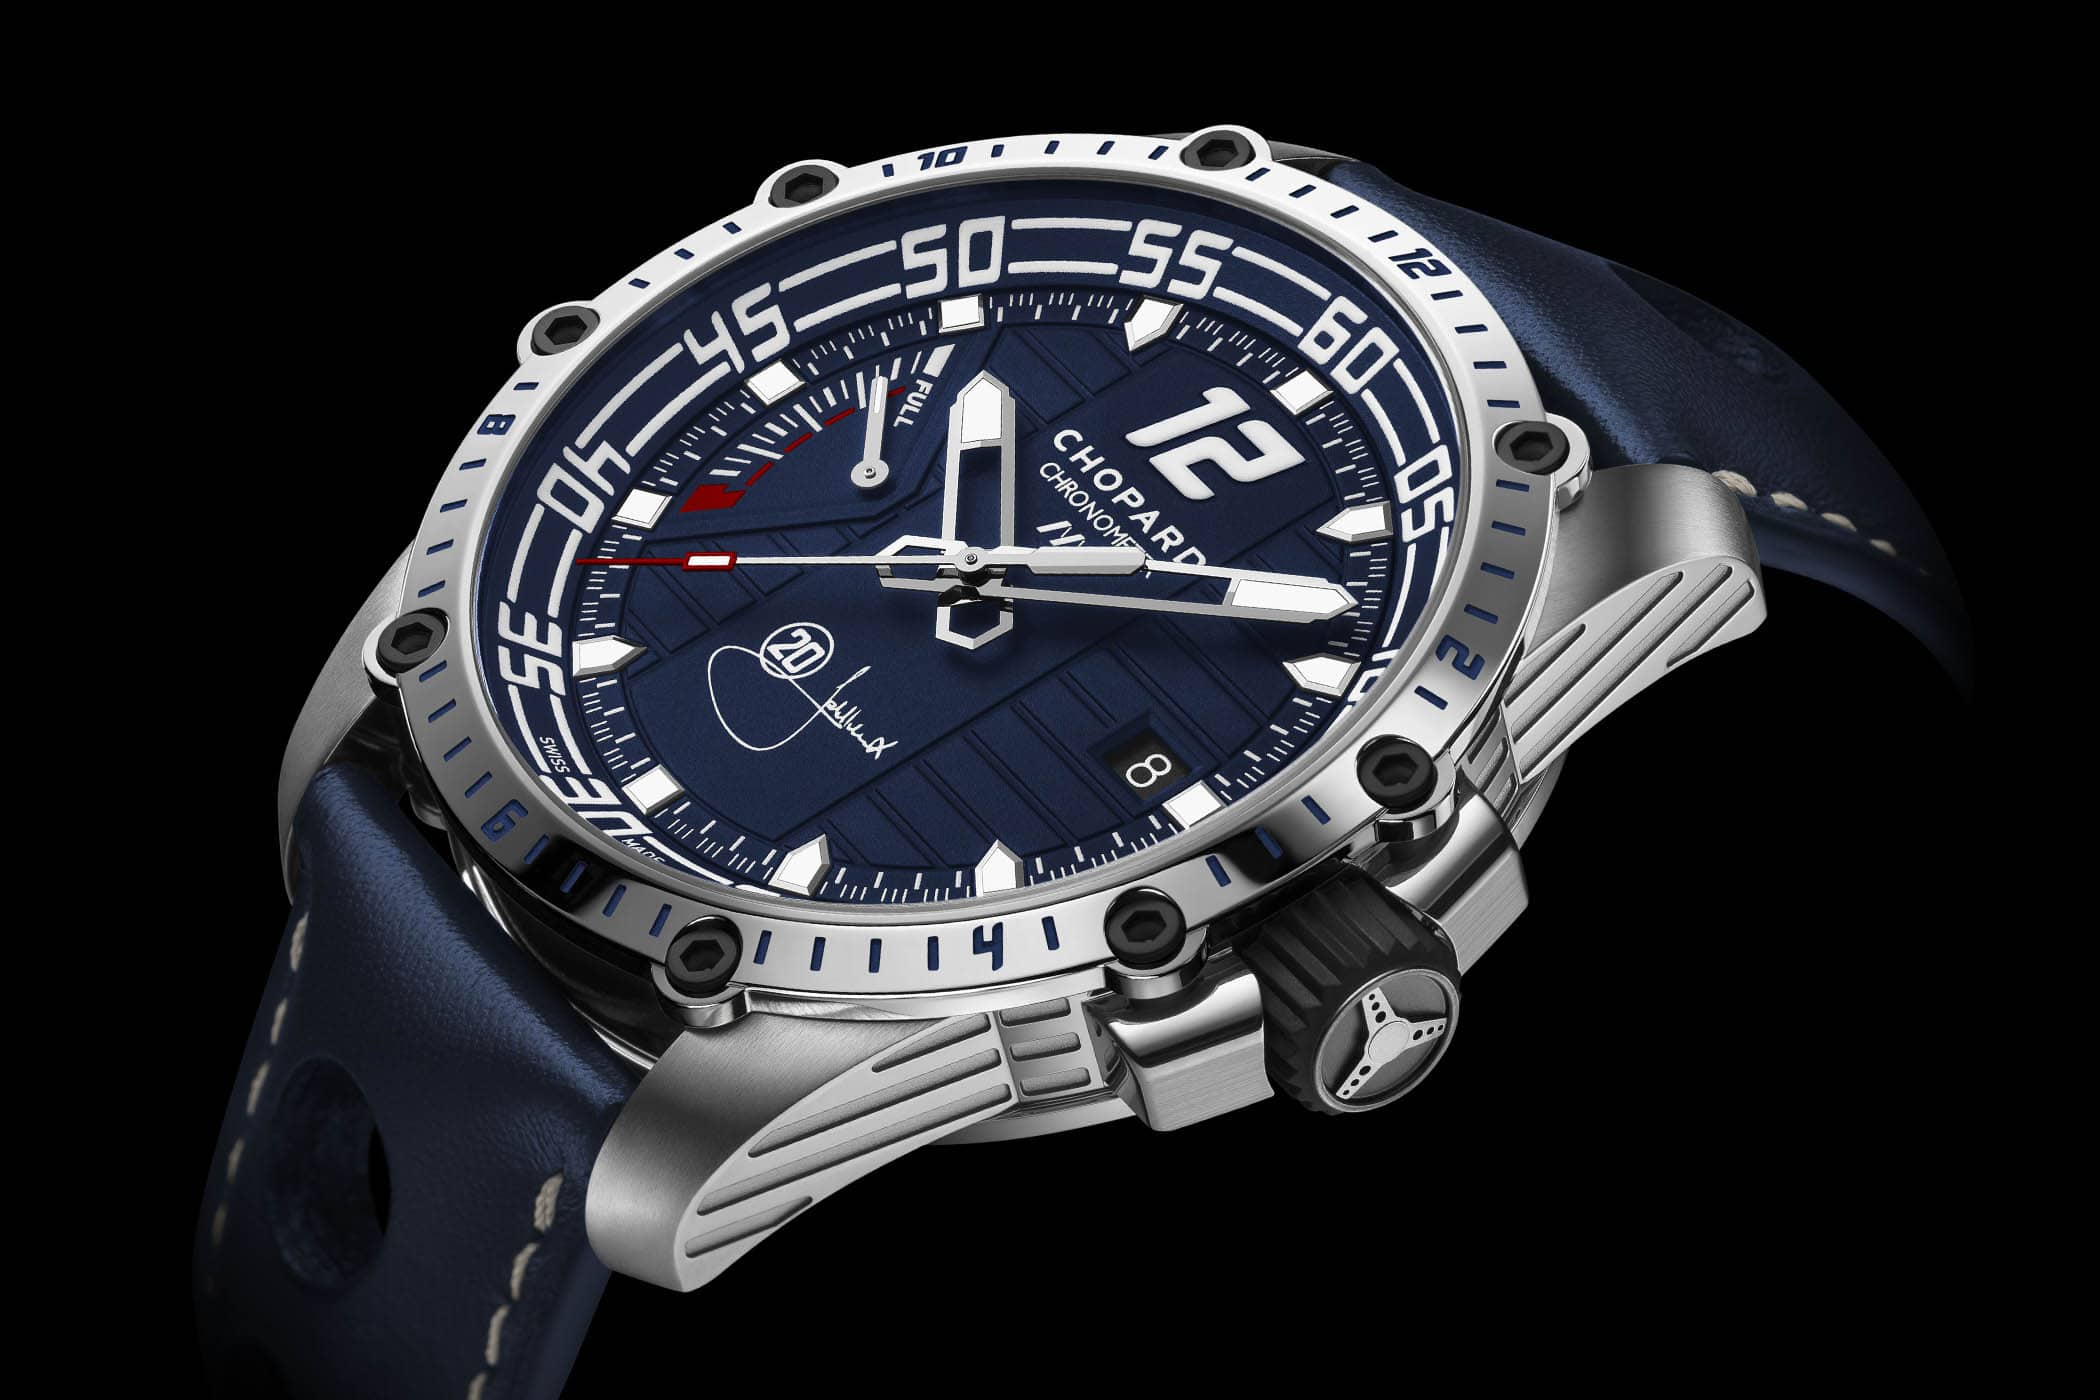 Chopard-Superfast-8-Hz-Power-Control-Porsche-919-Only-Watch-2017-3